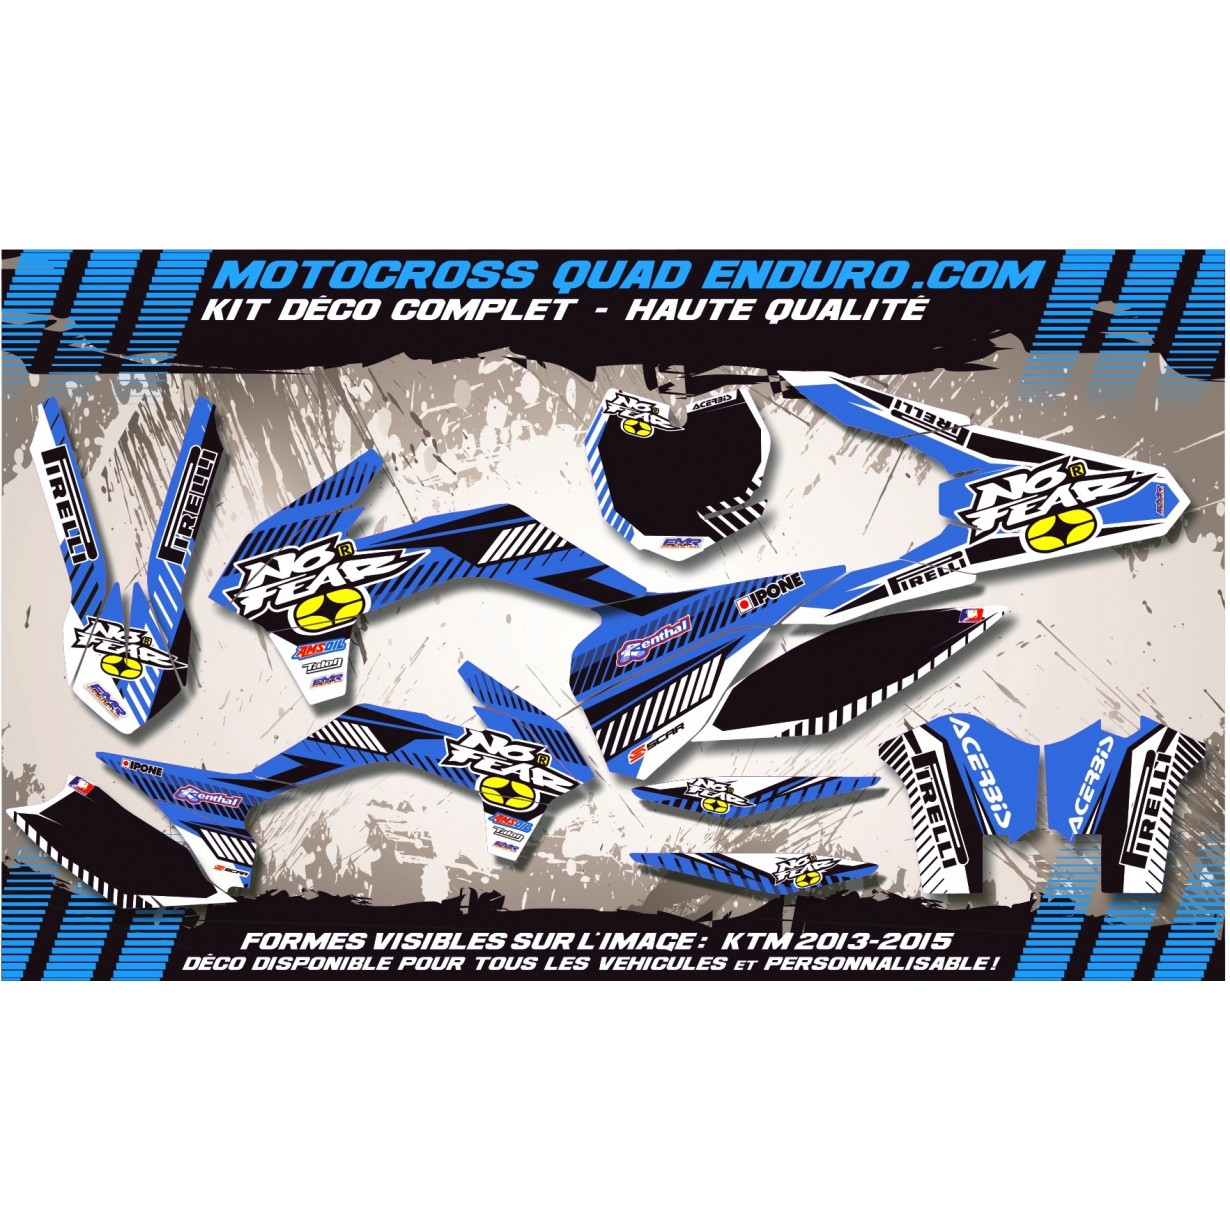 KIT DÉCO Perso 450 YFZ-R 09-15 QUAD NO FEAR MA5E